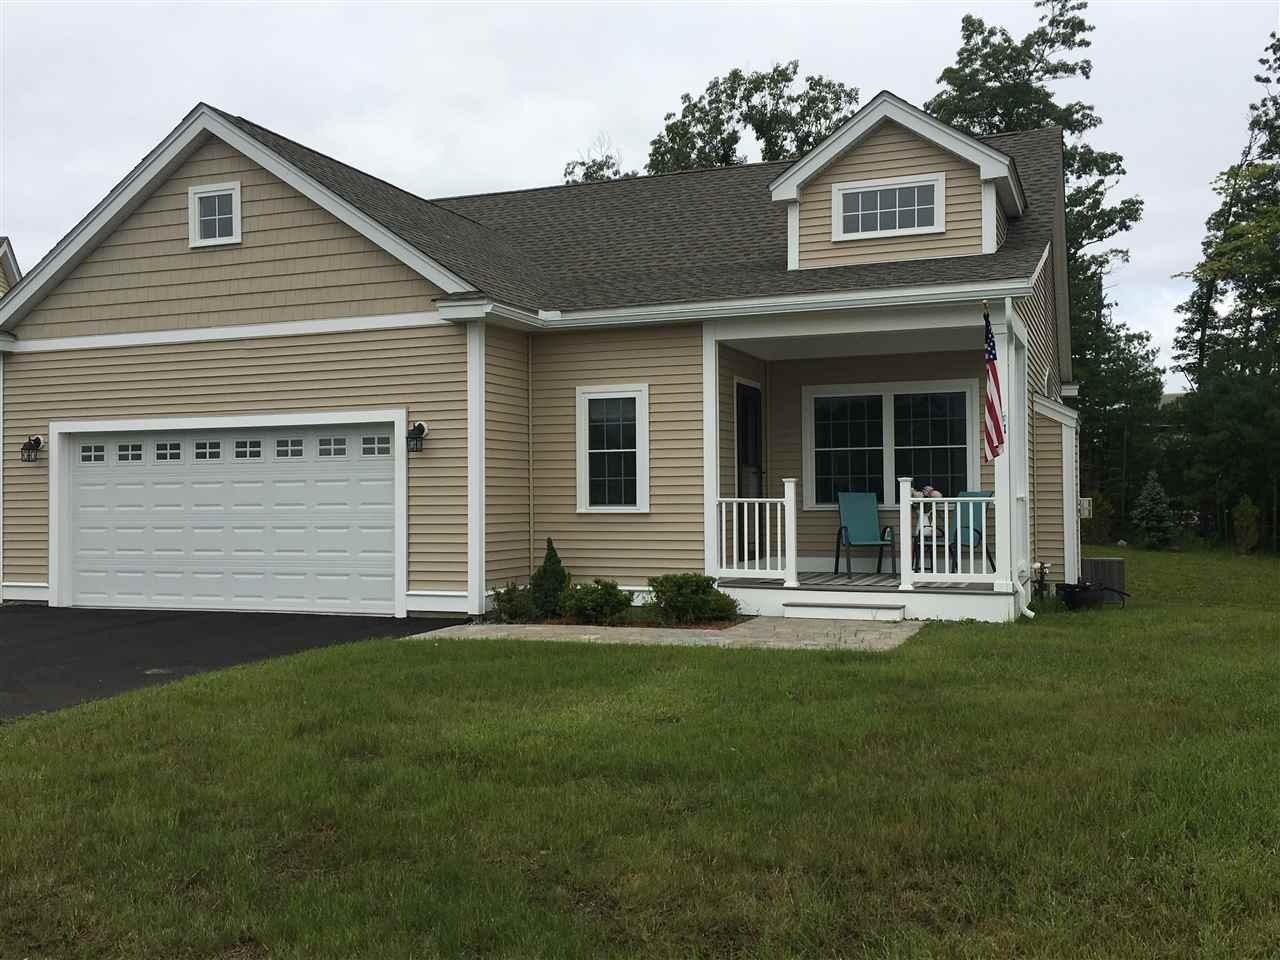 MLS 4769095: Lot 6 Toby Circle, Merrimack NH